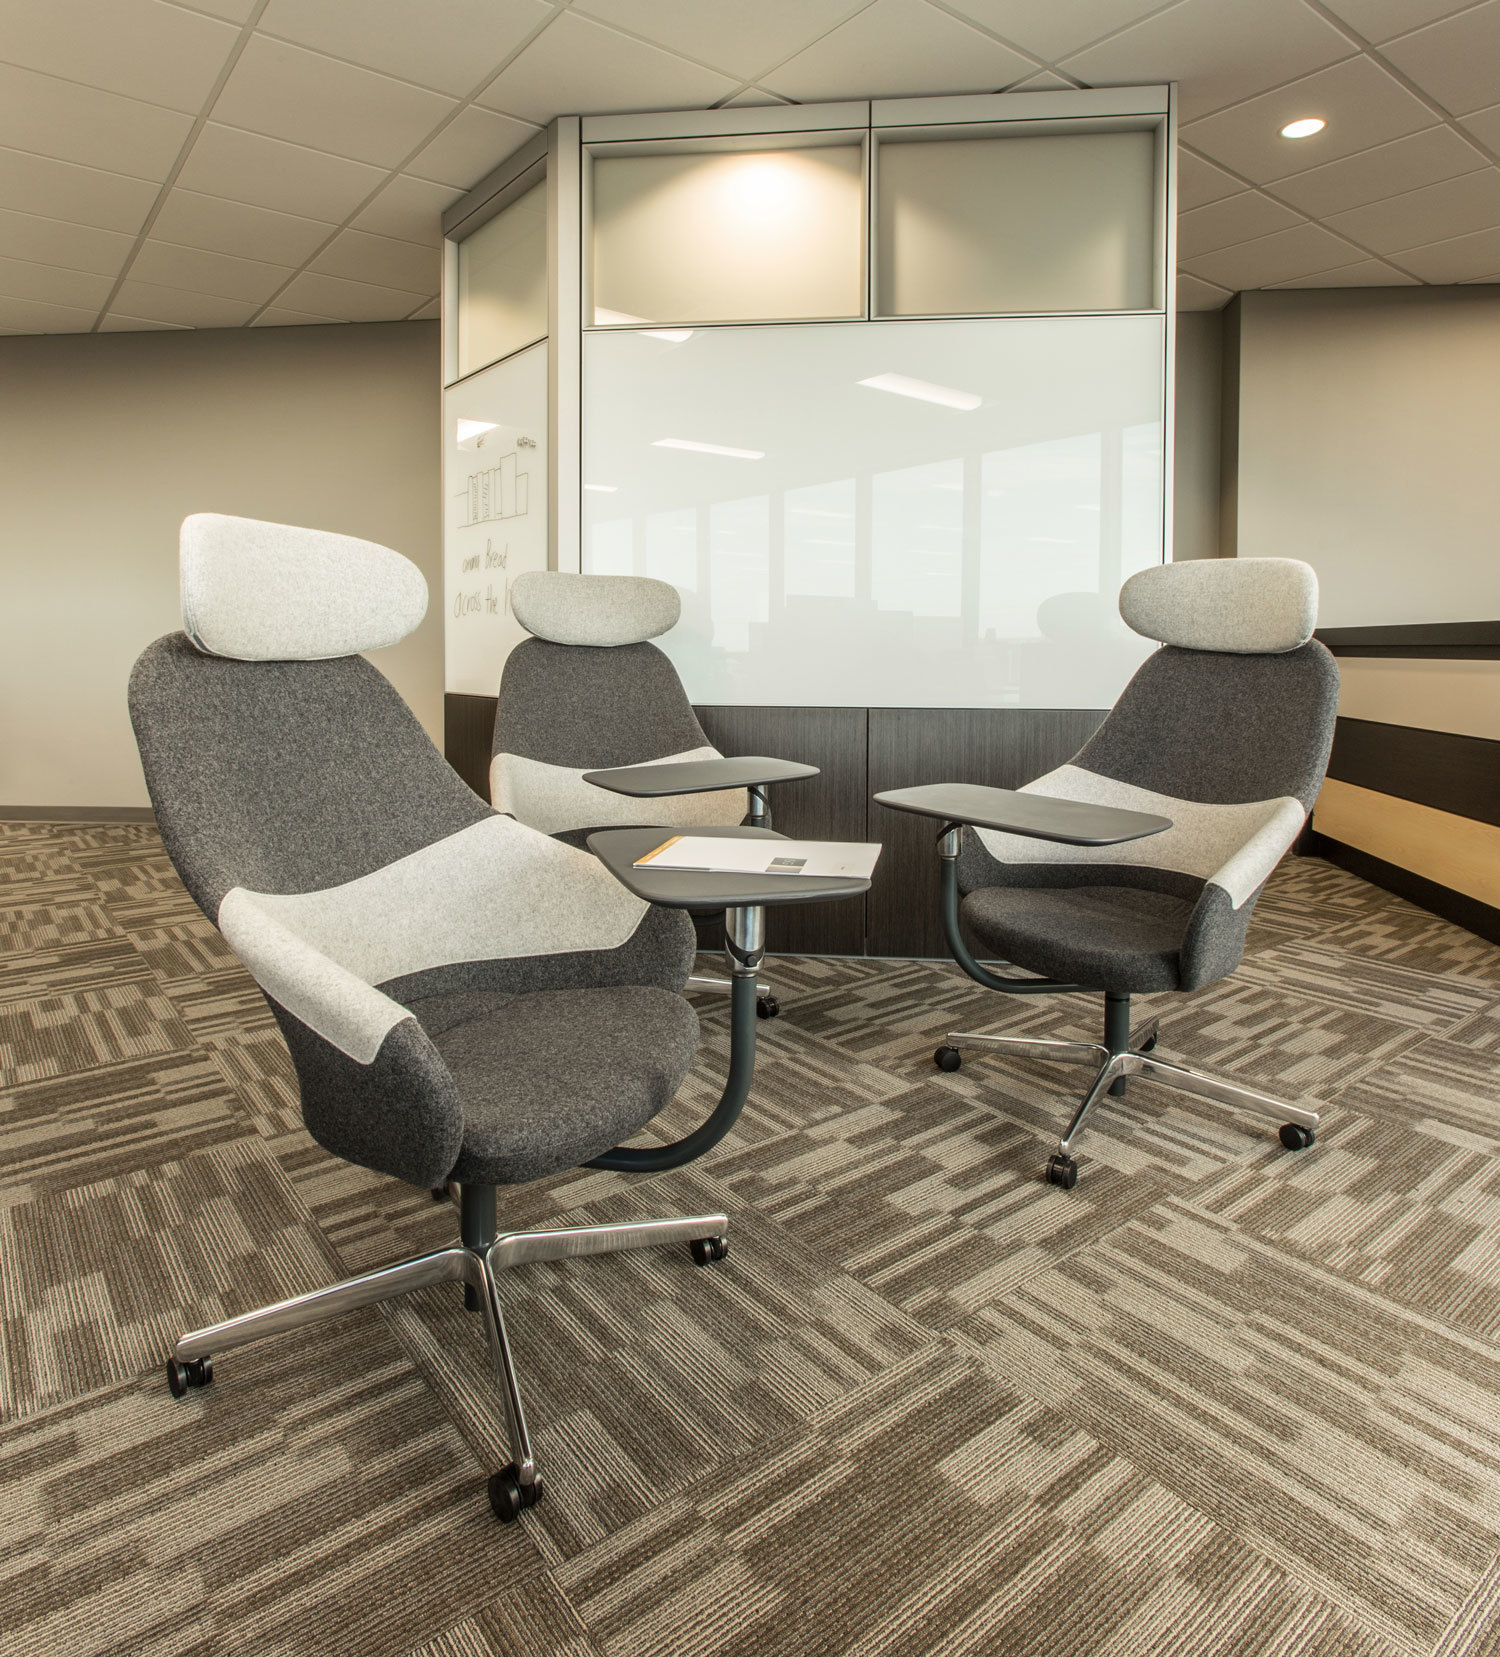 An open and creative meeting space at ISG in Bloomington, Minnesota, furnished by iSpace Environments.